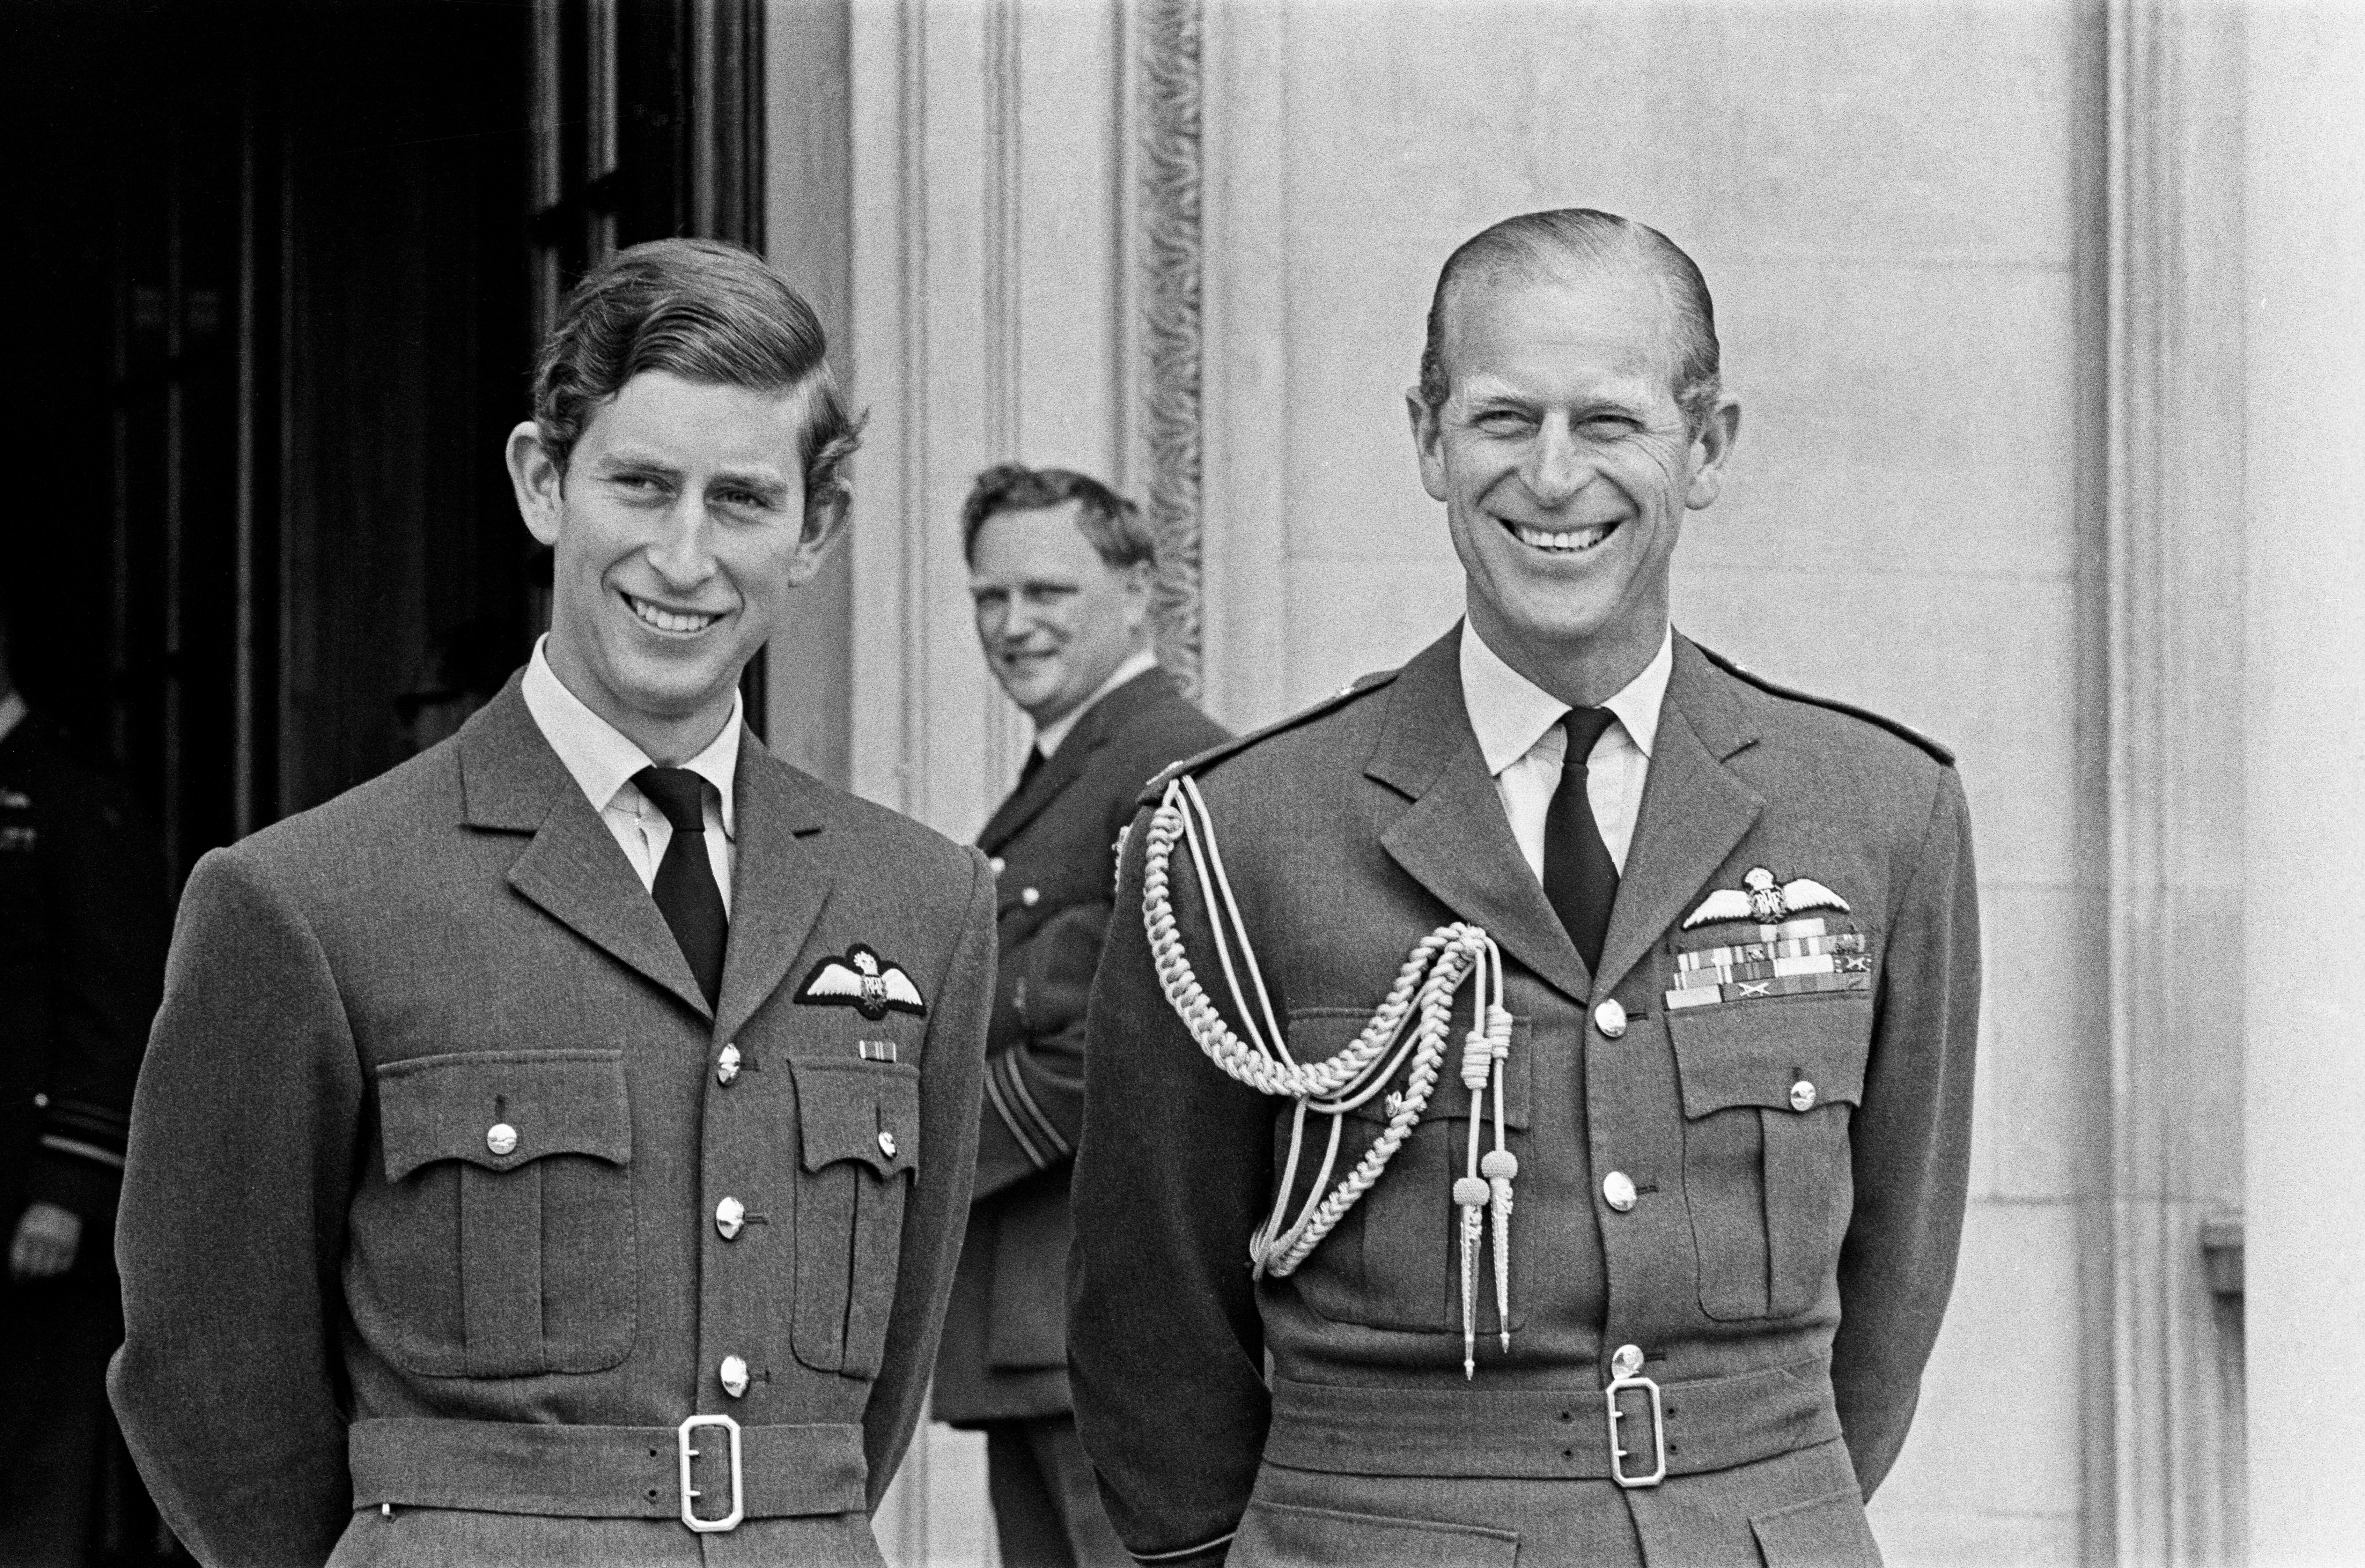 Prince Charles and Prince Philip wearing RAF uniform at the passing out parade at Cranwell in September 1971 | Source: Getty Images